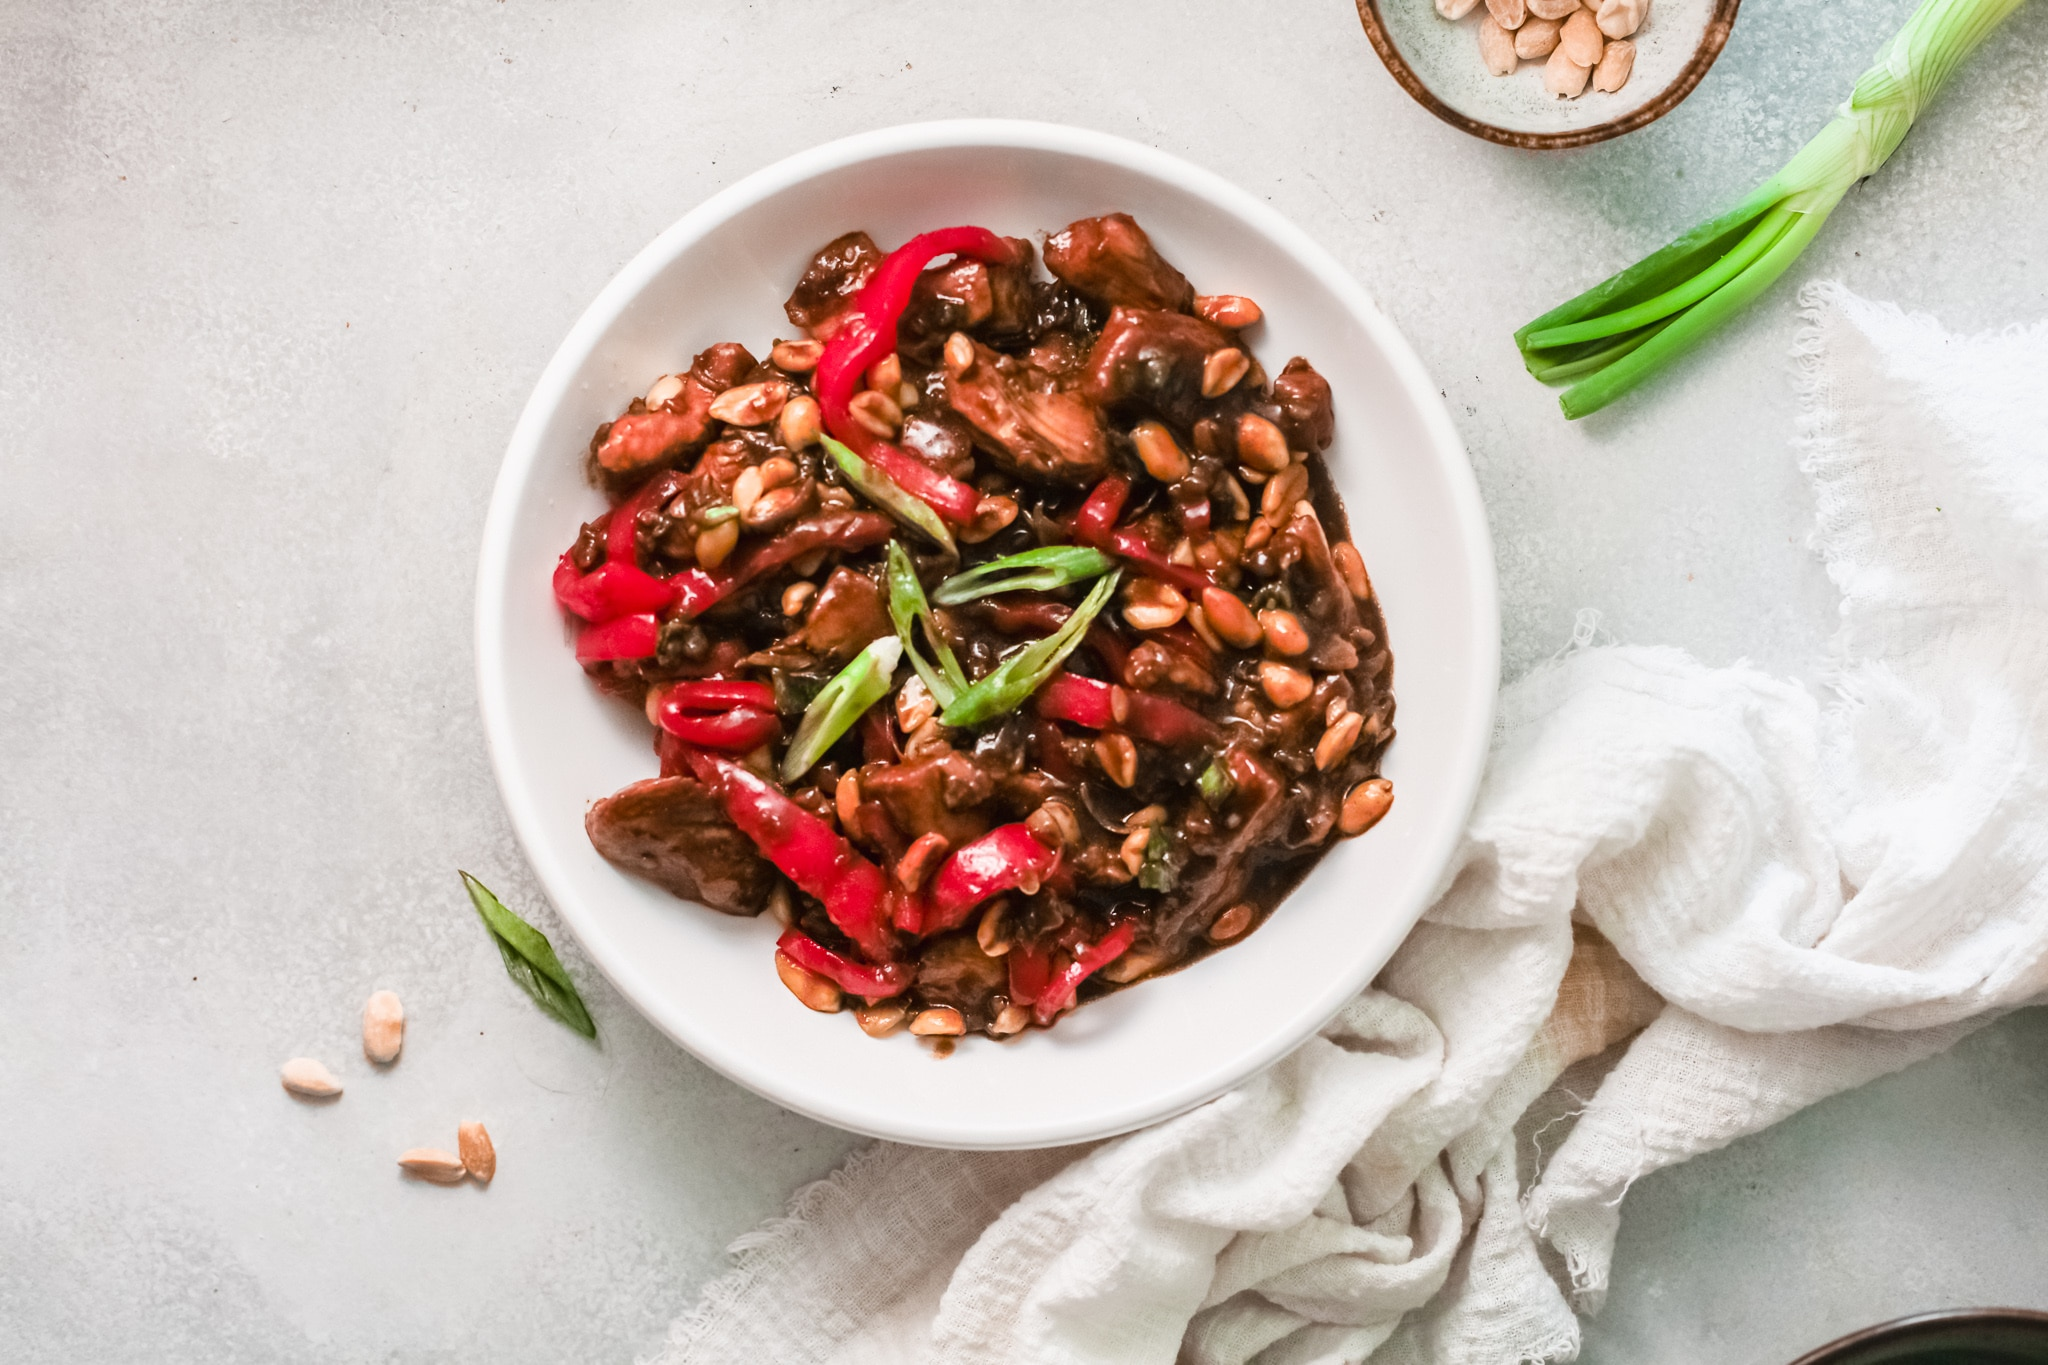 Better than Chinese takeout, make this Kung Pao Chicken at home. A horizonal shot of the Kung Pao Chicken dish being served in a white bowl next to a white napkin.